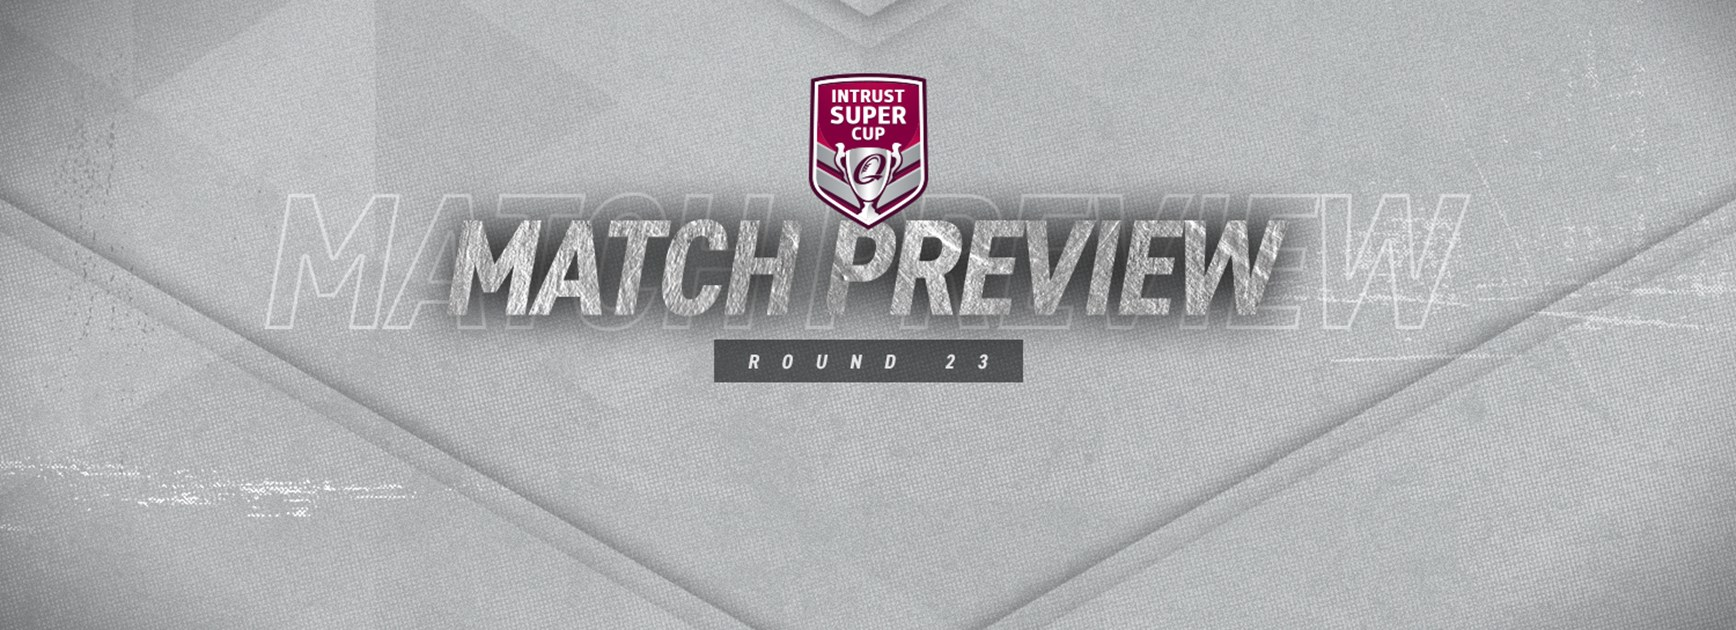 Intrust Super Cup Round 23 preview